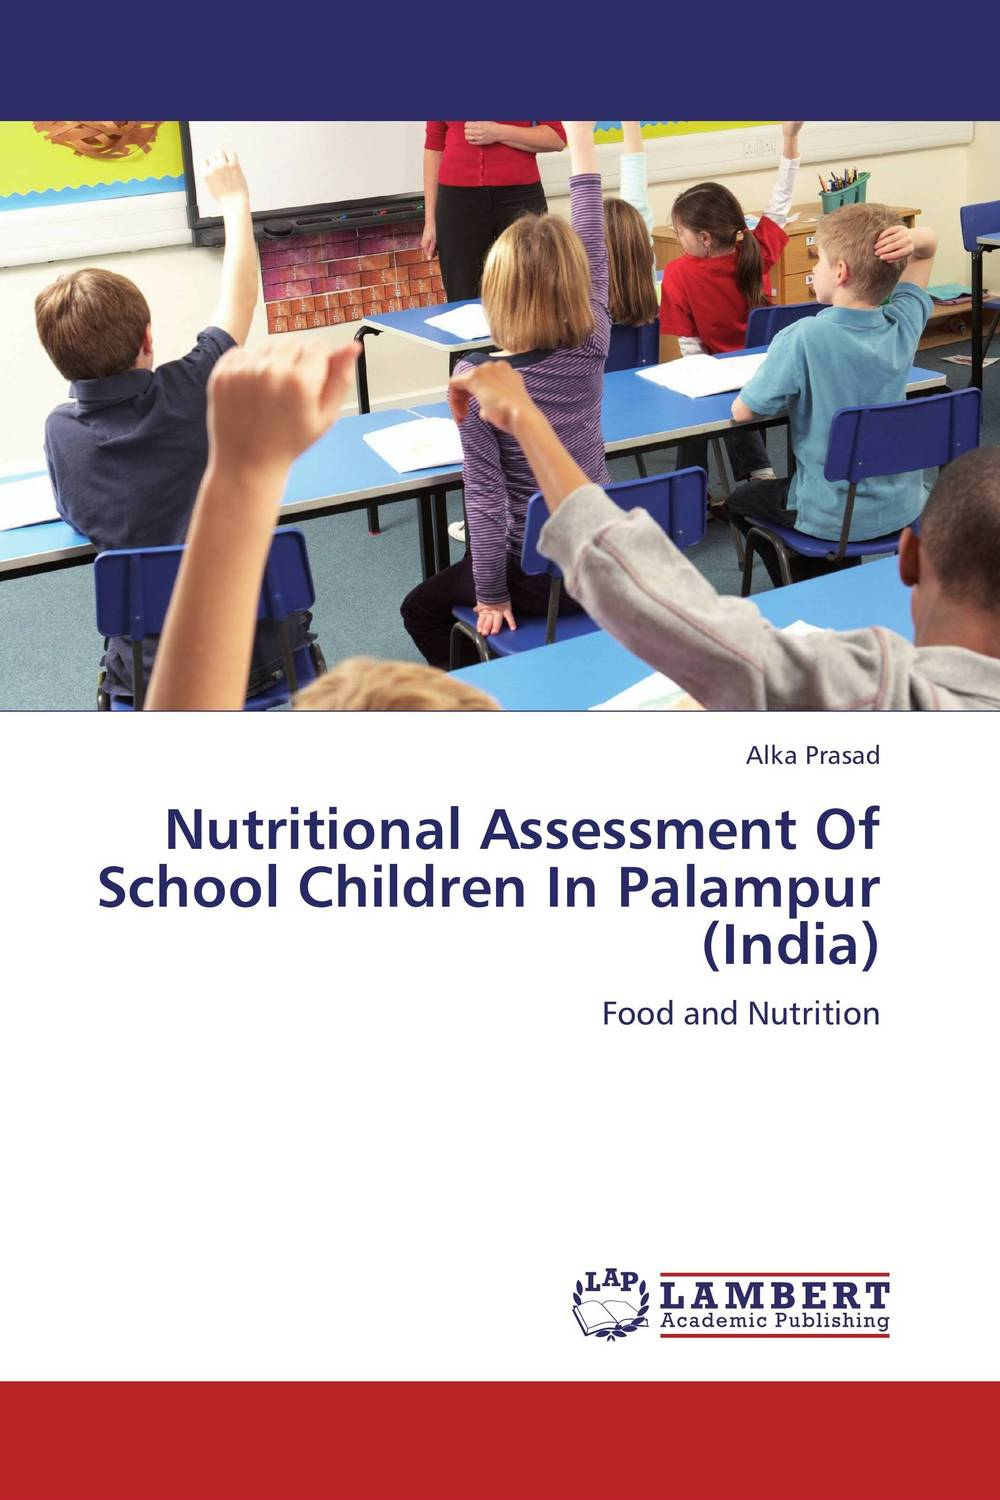 Nutritional Assessment Of School Children In Palampur (India) measles immunity status of children in kano nigeria